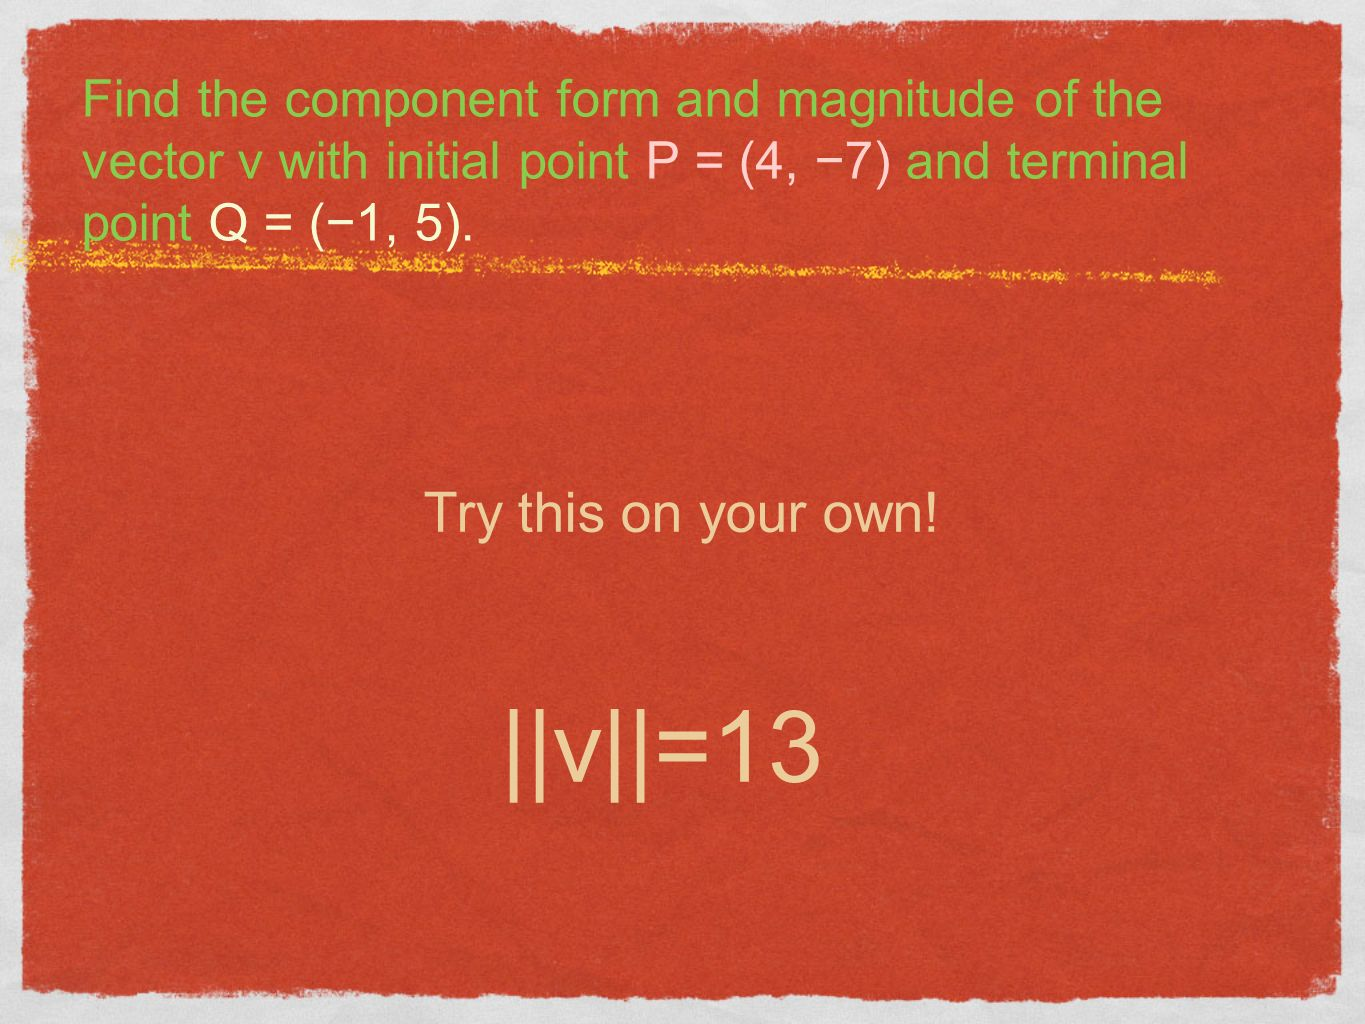 Find the component form and magnitude of the vector v with initial point P = (4, 7) and terminal point Q = (1, 5). Try this on your own! ||v||=13